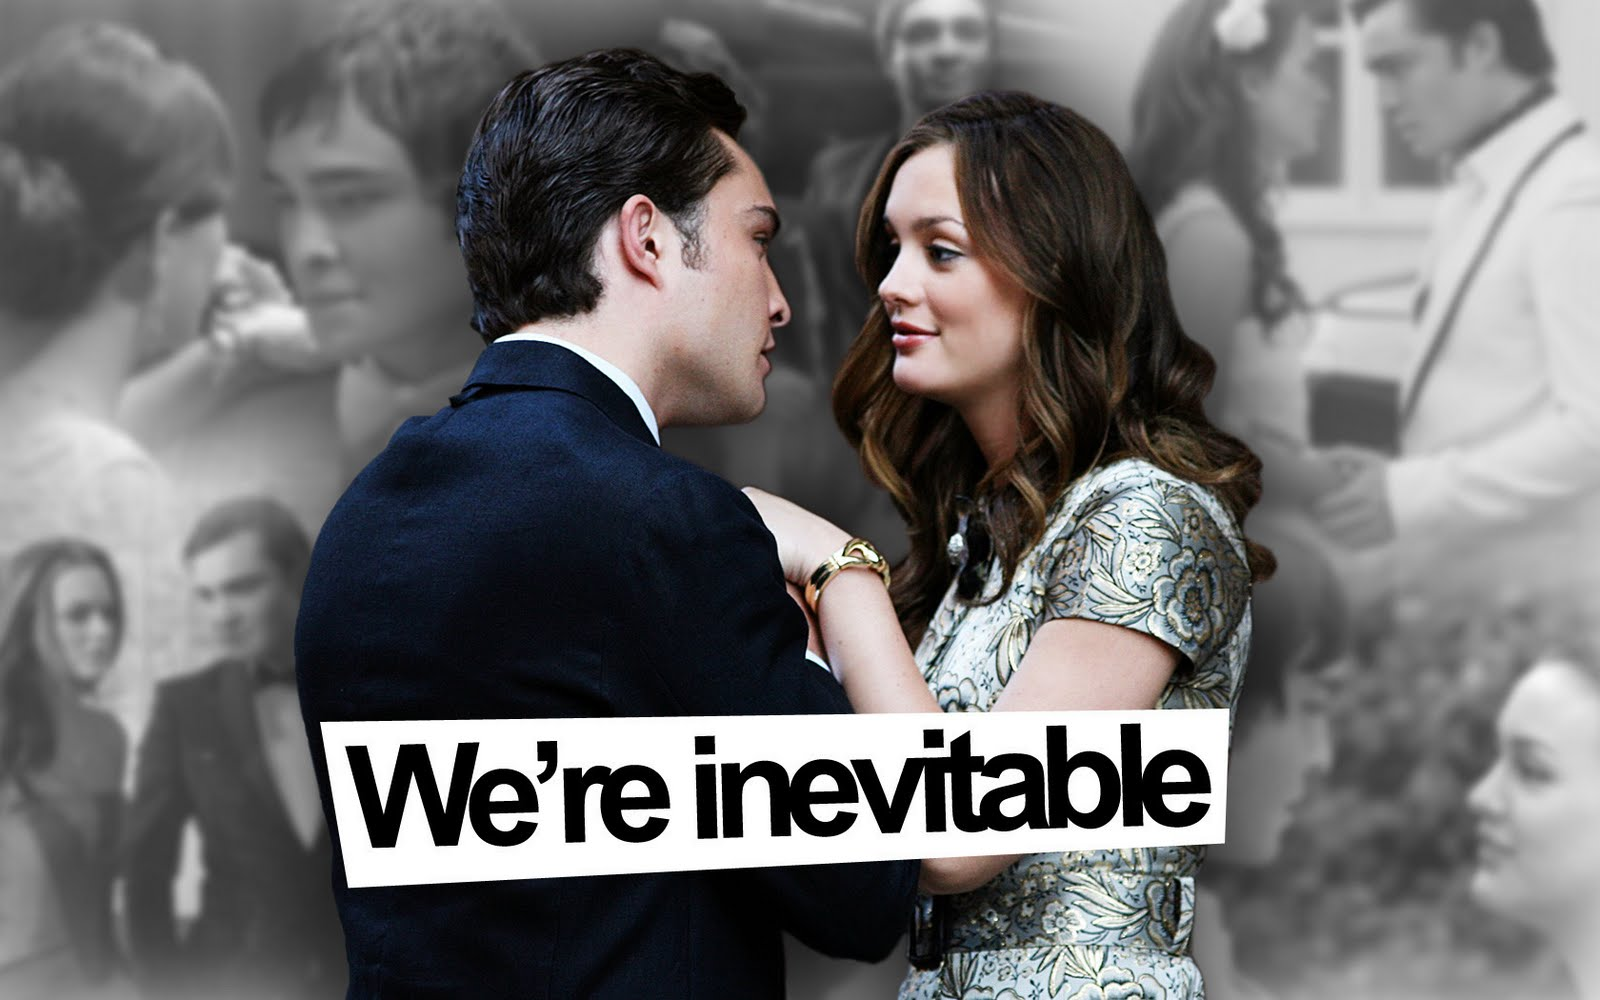 http://1.bp.blogspot.com/-6WXN8sD3UJs/TaxEbnqRilI/AAAAAAAABr0/MkzTY3iDRPc/s1600/Chuck-and-Blair-season3-wallpaper-blair-and-chuck-7080698-1680-1050.jpg